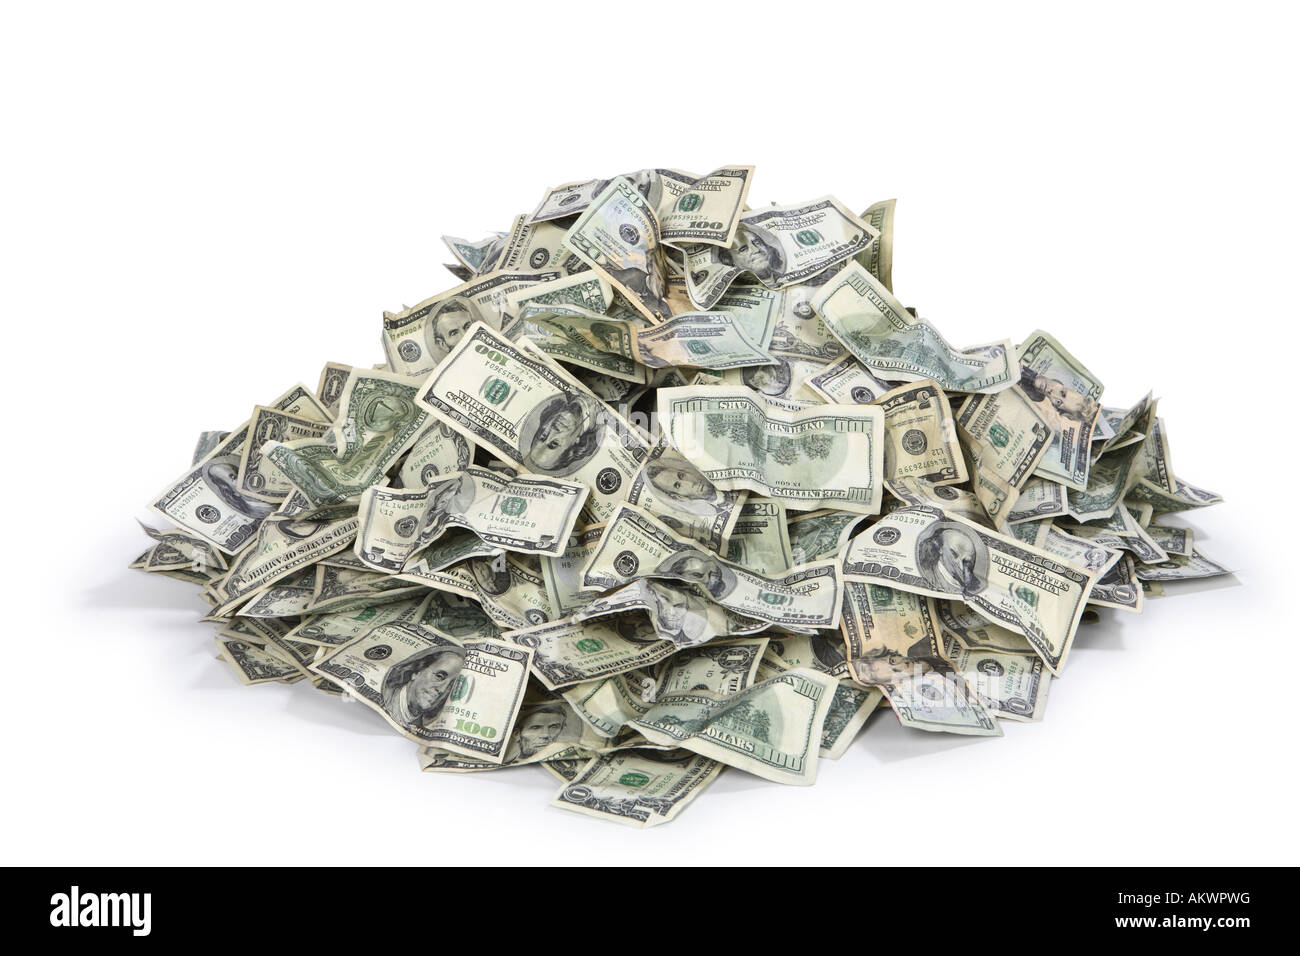 Pile of US money cut out on white background Stock Photo